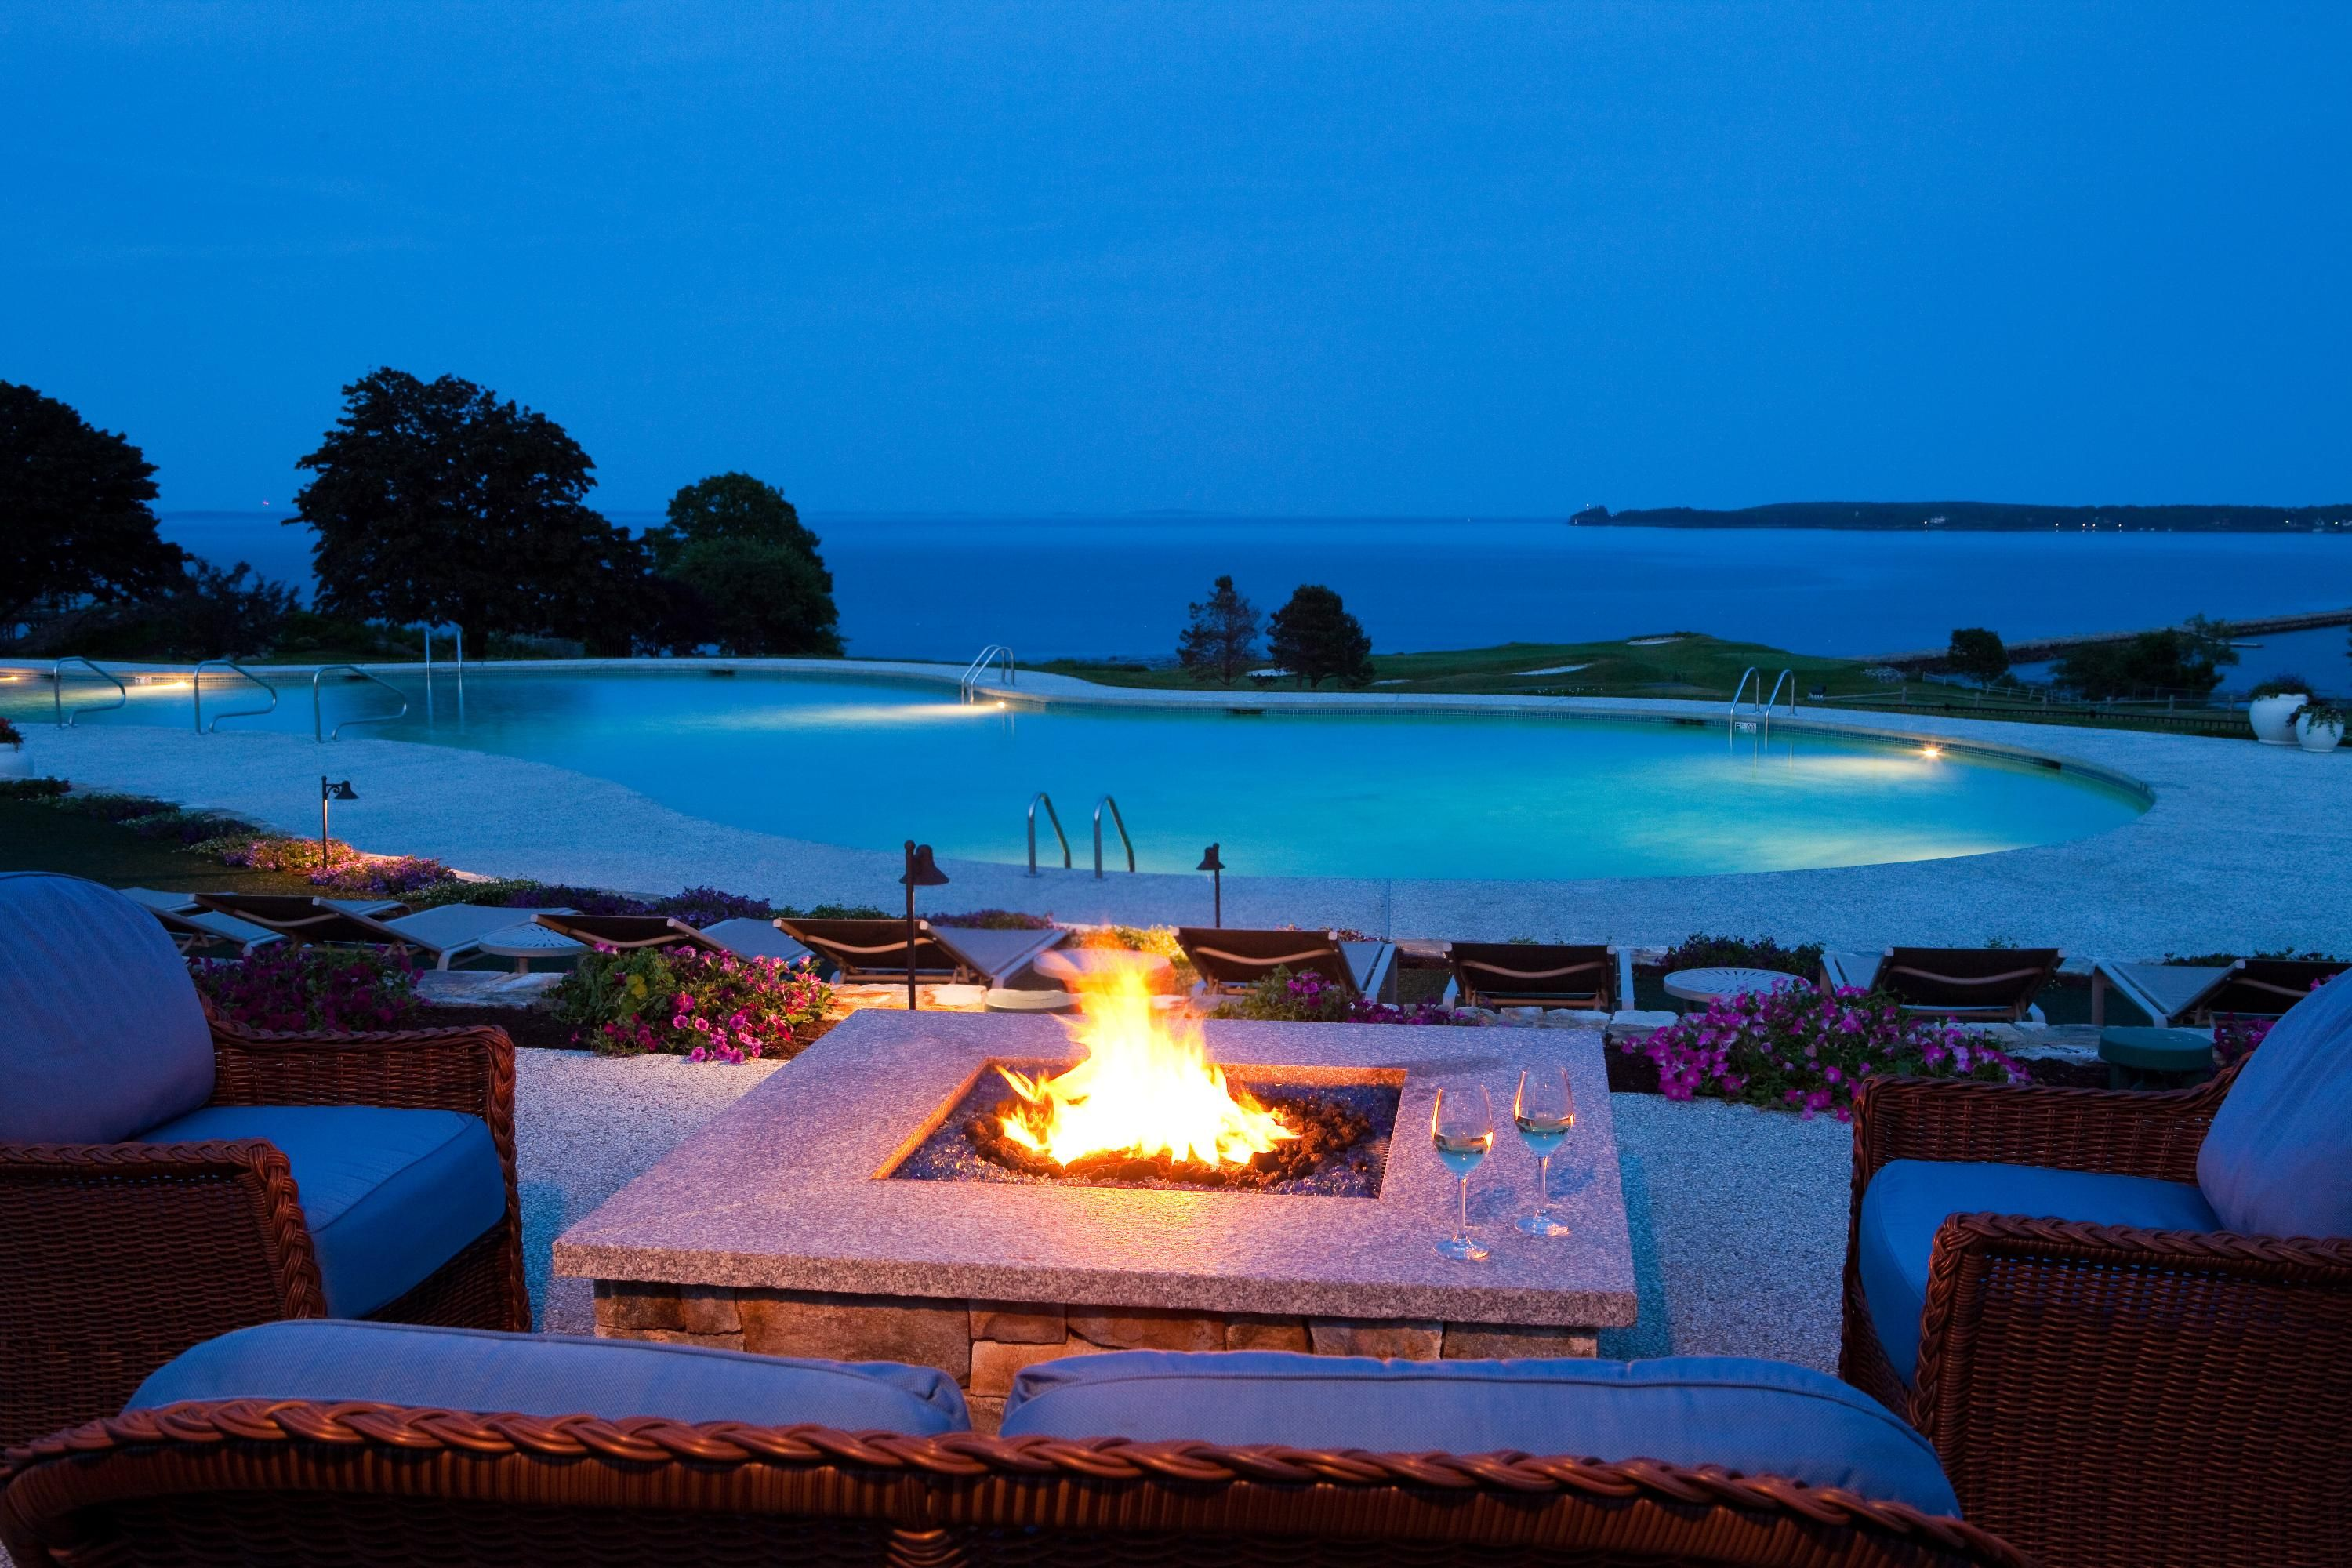 Romantic fire place by the pool at Samoset Resort in